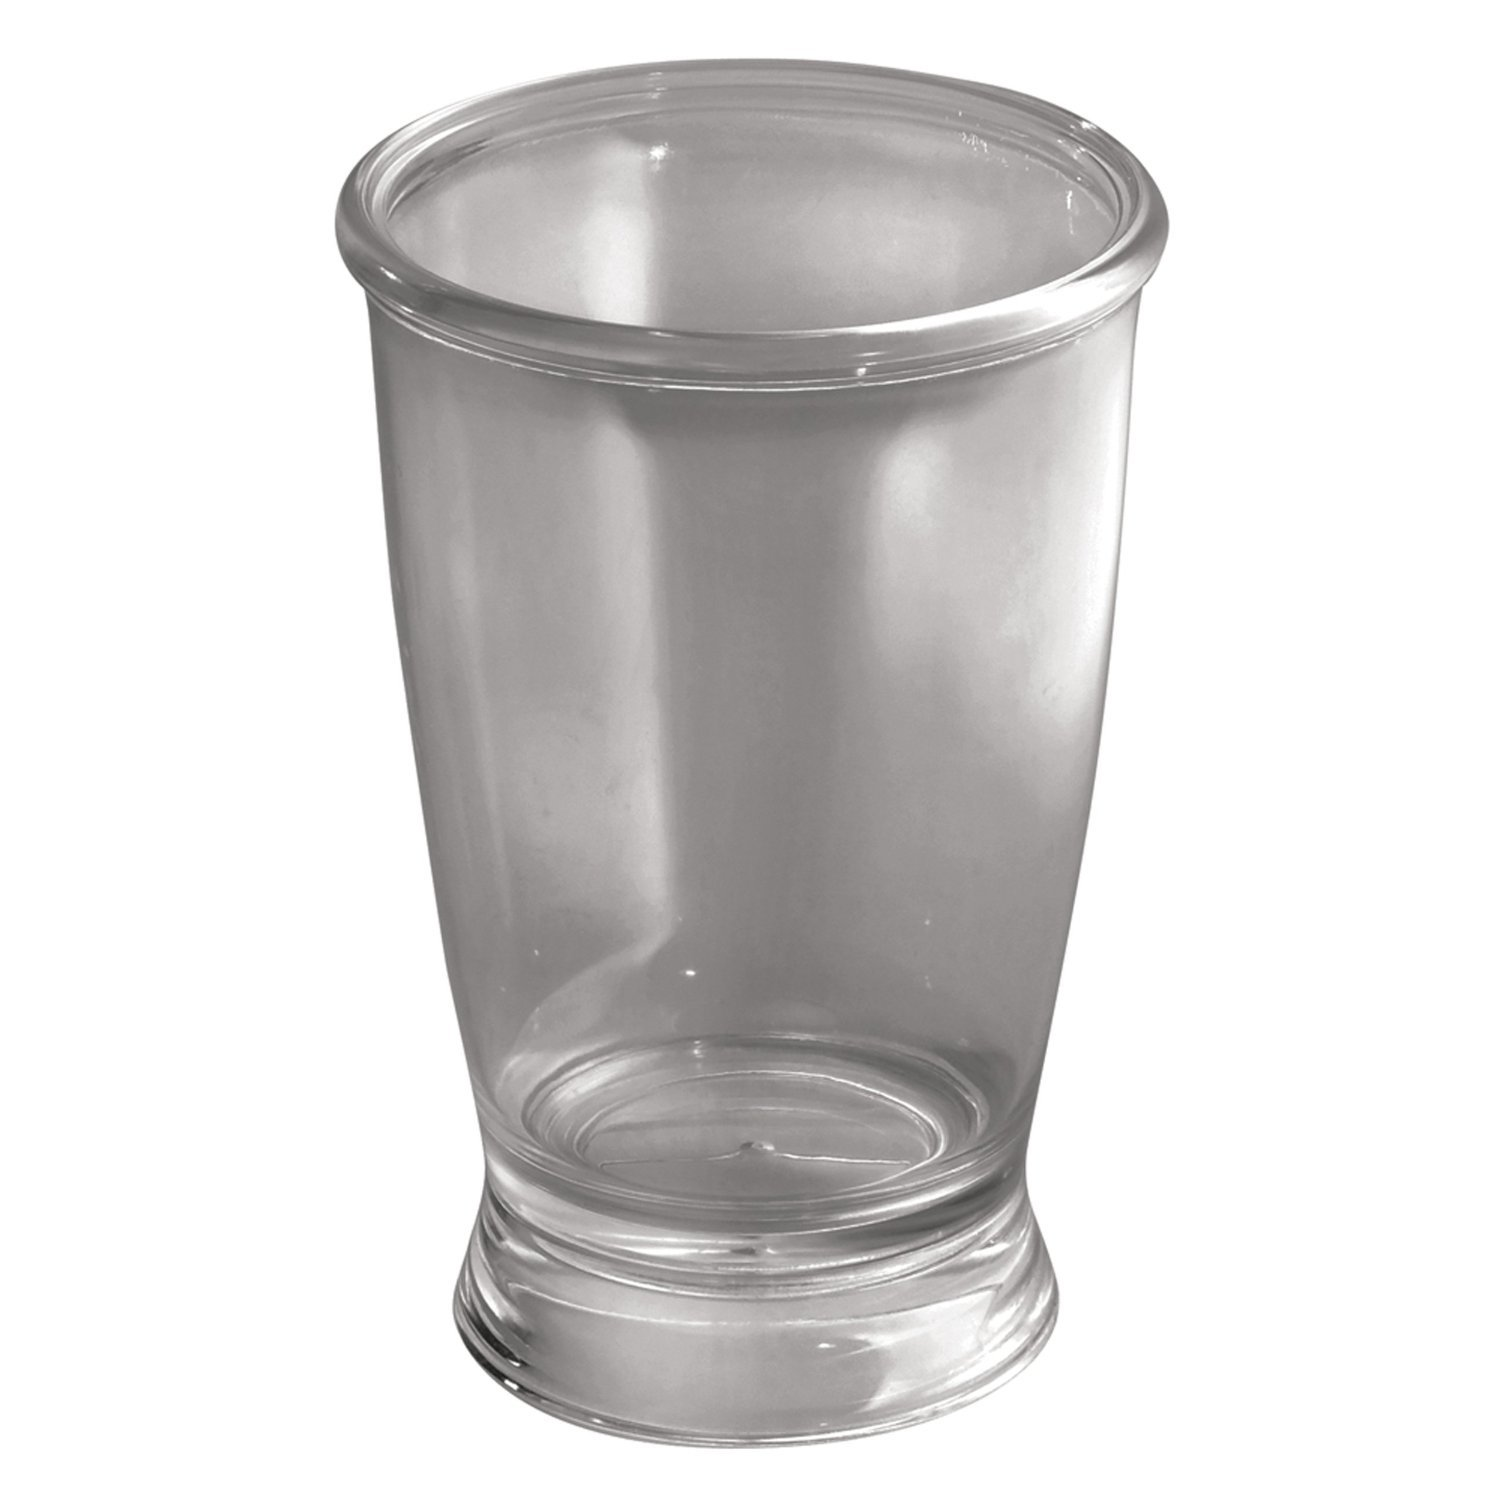 Interdesign Franklin Tumbler - Smoke Plastic image